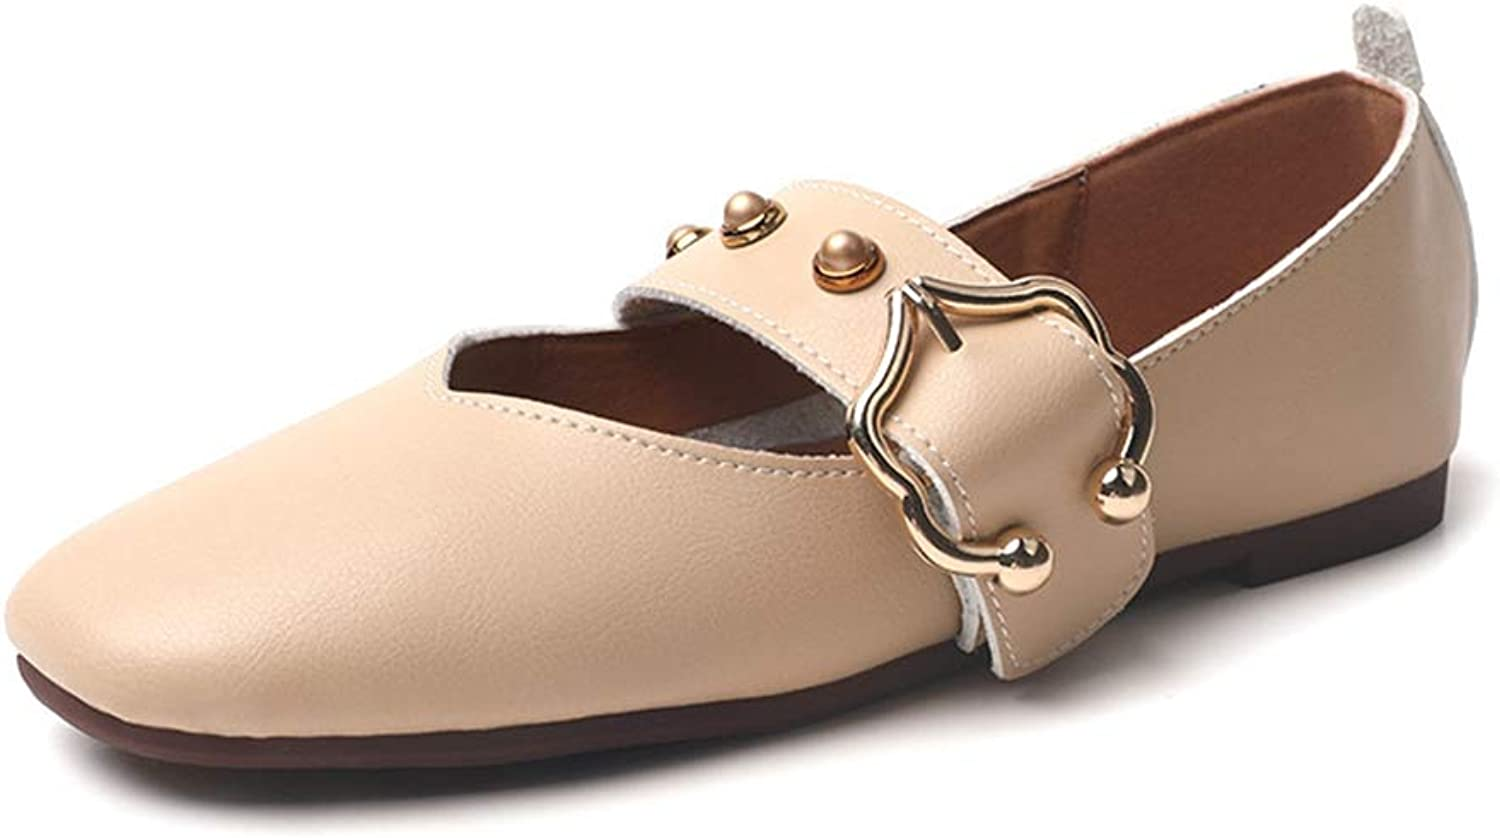 F-OXMY Women Anti-Slip Rubber Outsole Loafers Casual Moccasin Driving Flat Slip-on Buckle Oxfords shoes